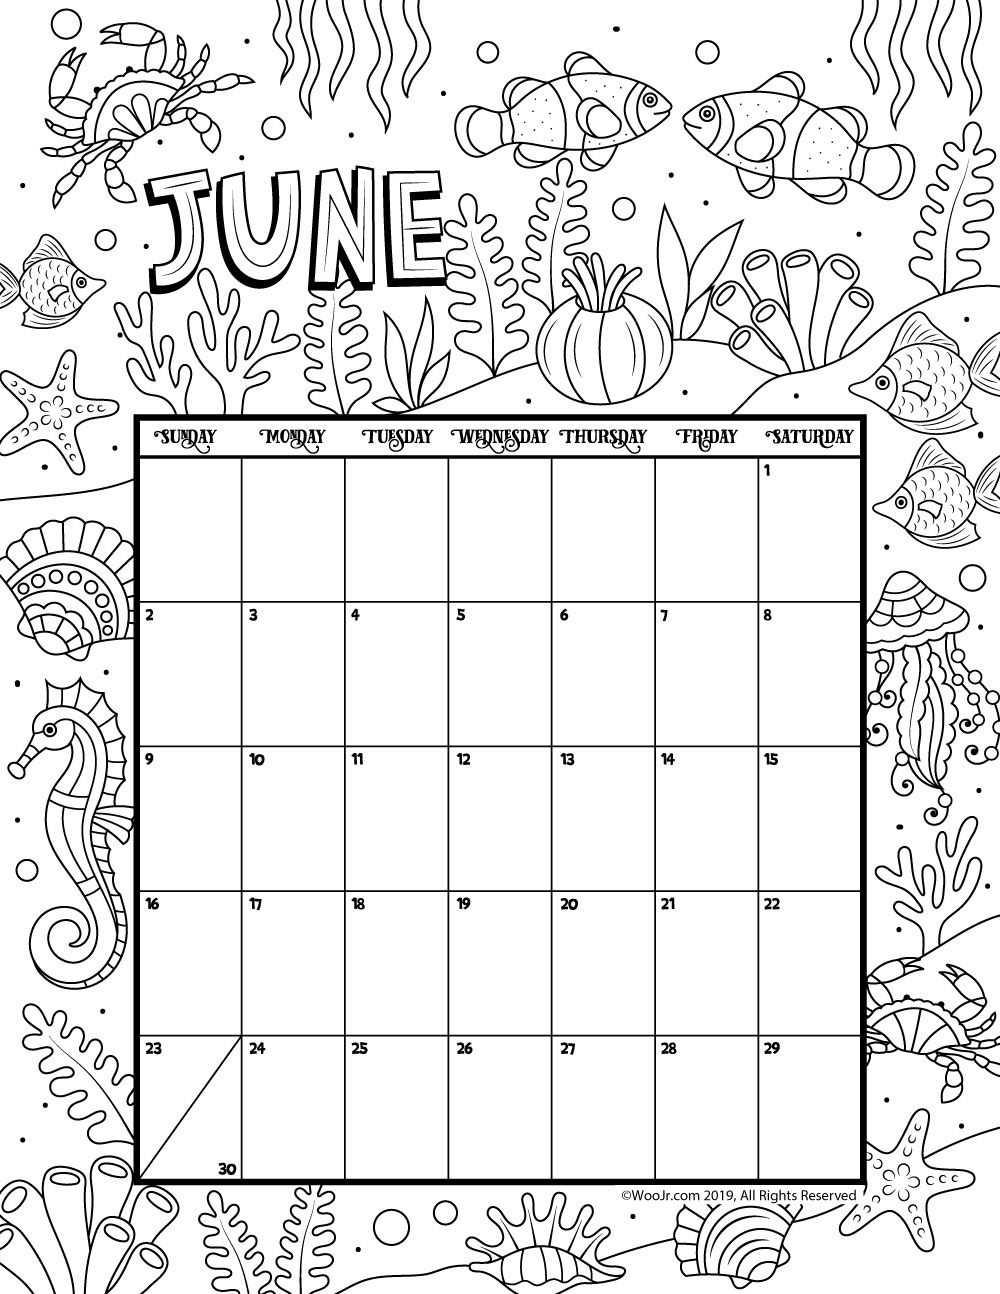 June Page June Page new picture